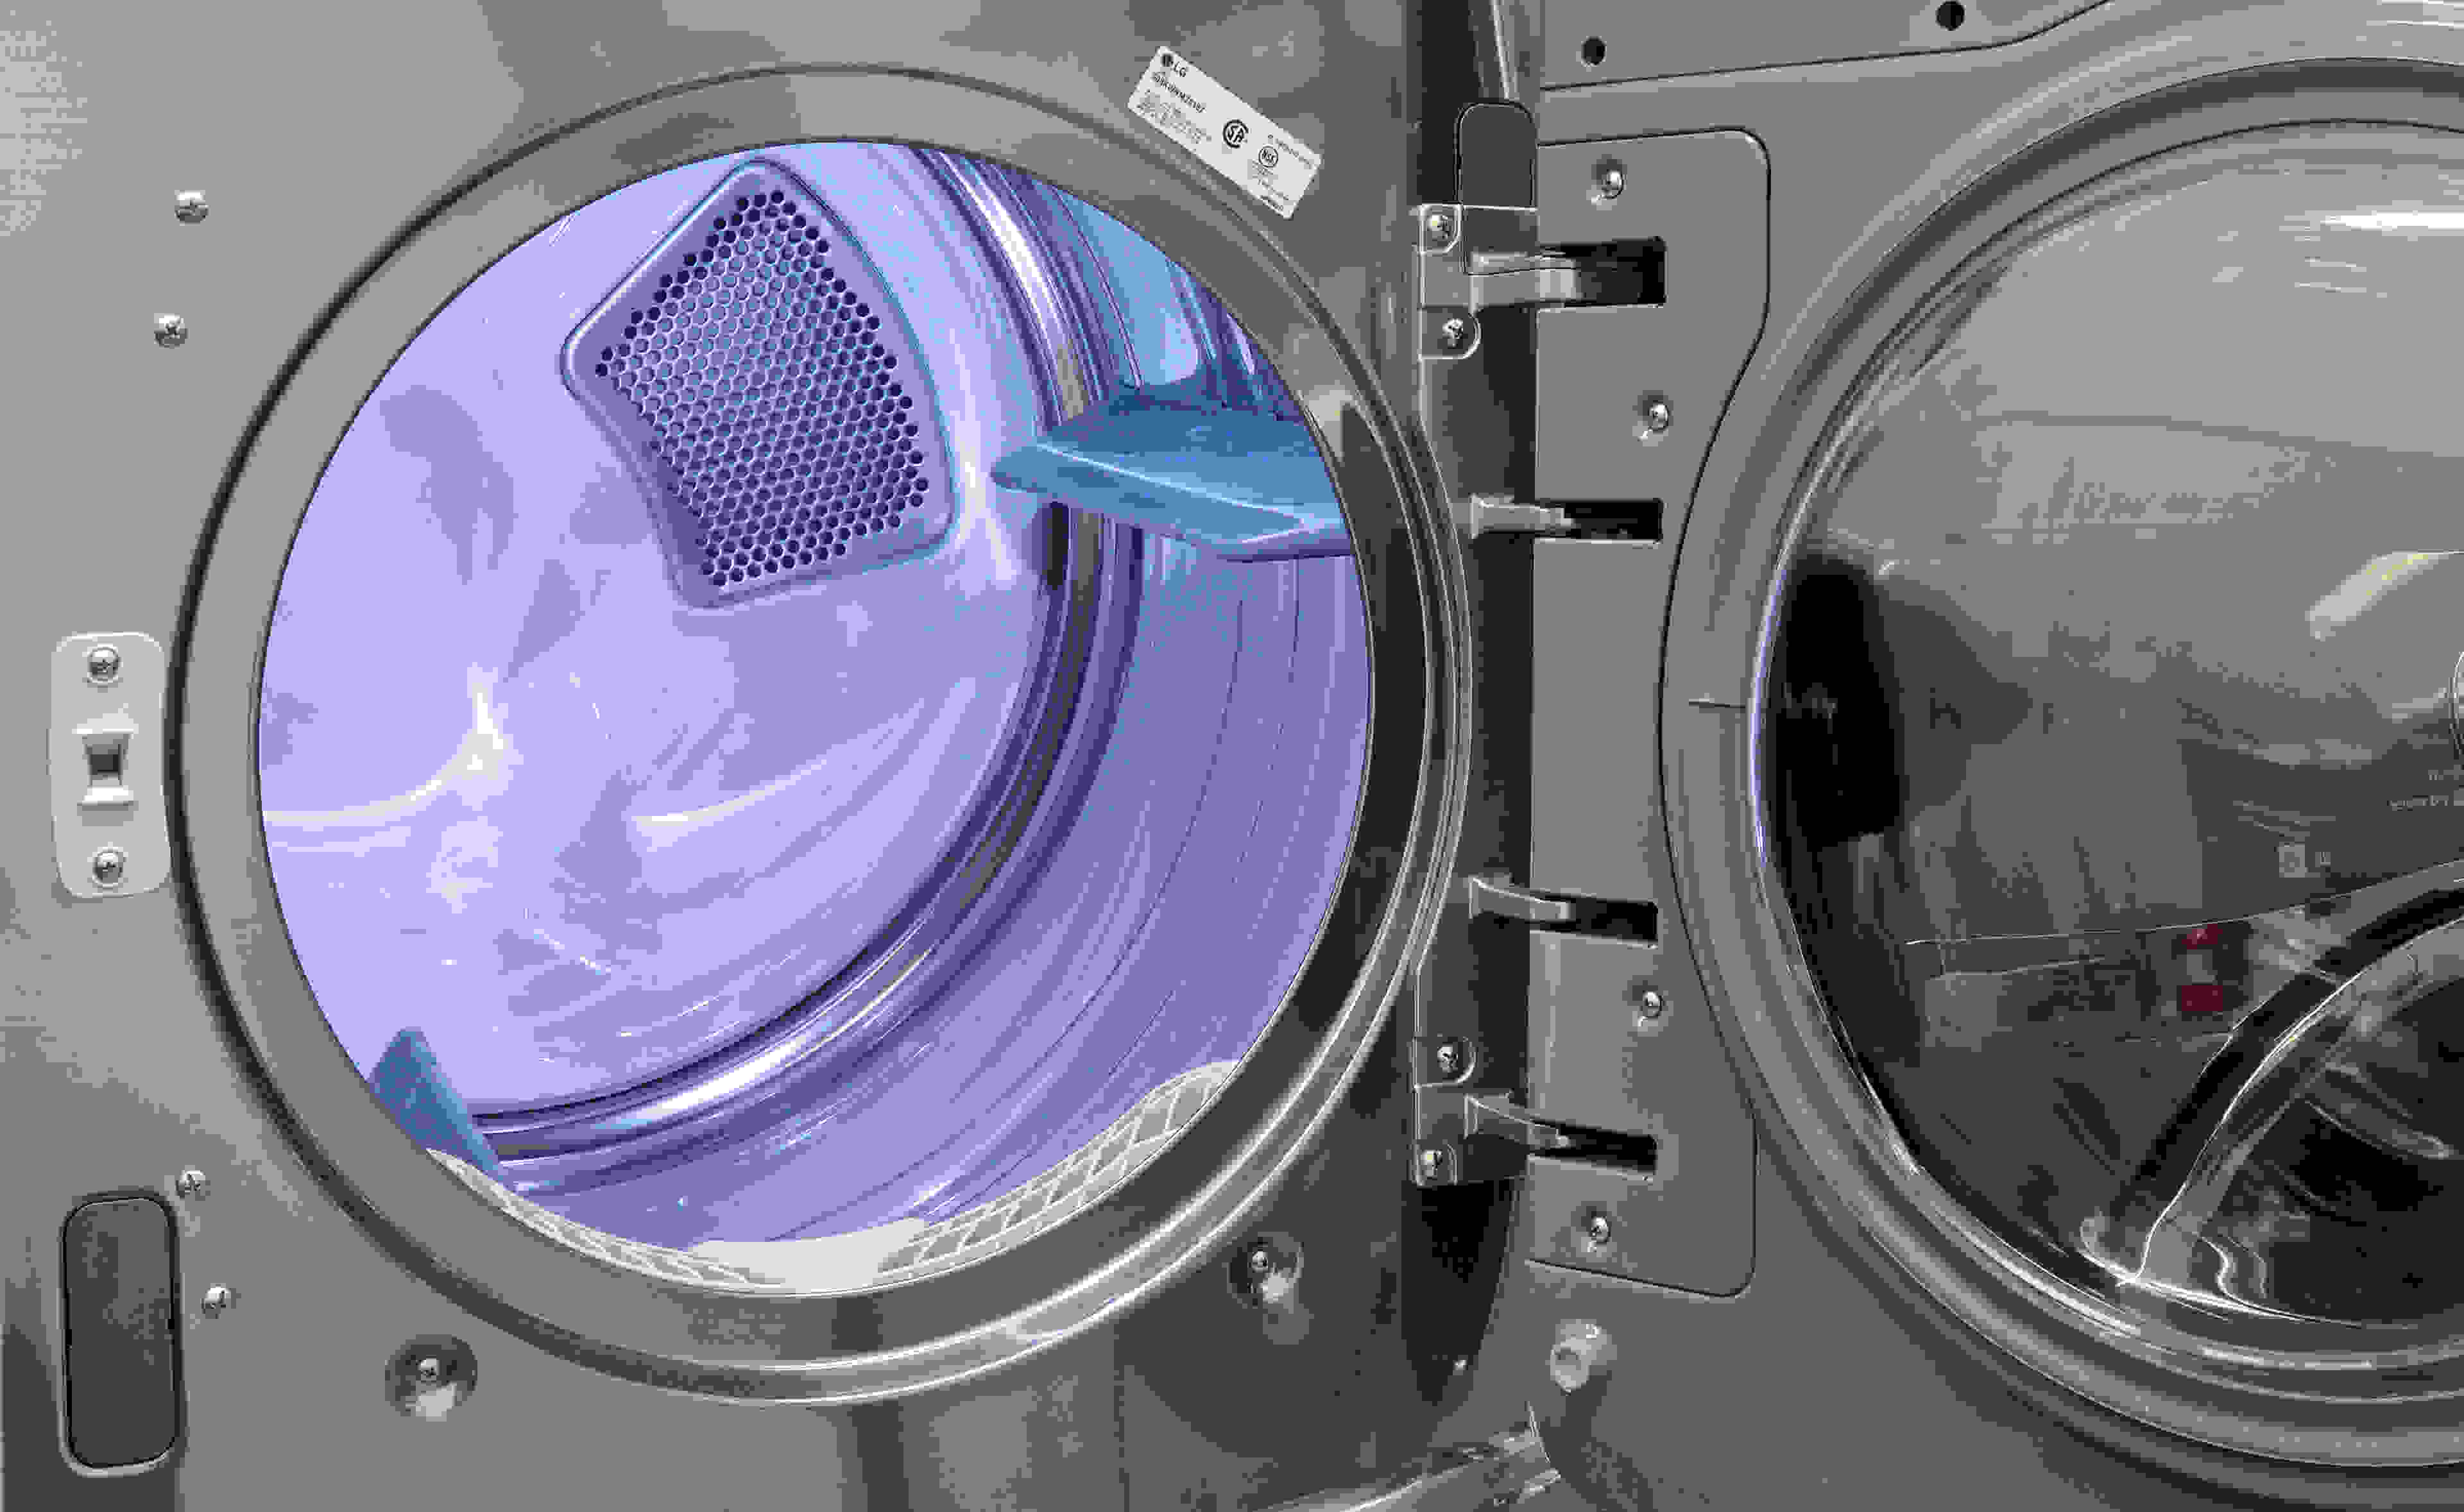 The inside of the LG DLEX5000V features a stainless steel drum that—unlike the tilted washer—sits at a normal angle.